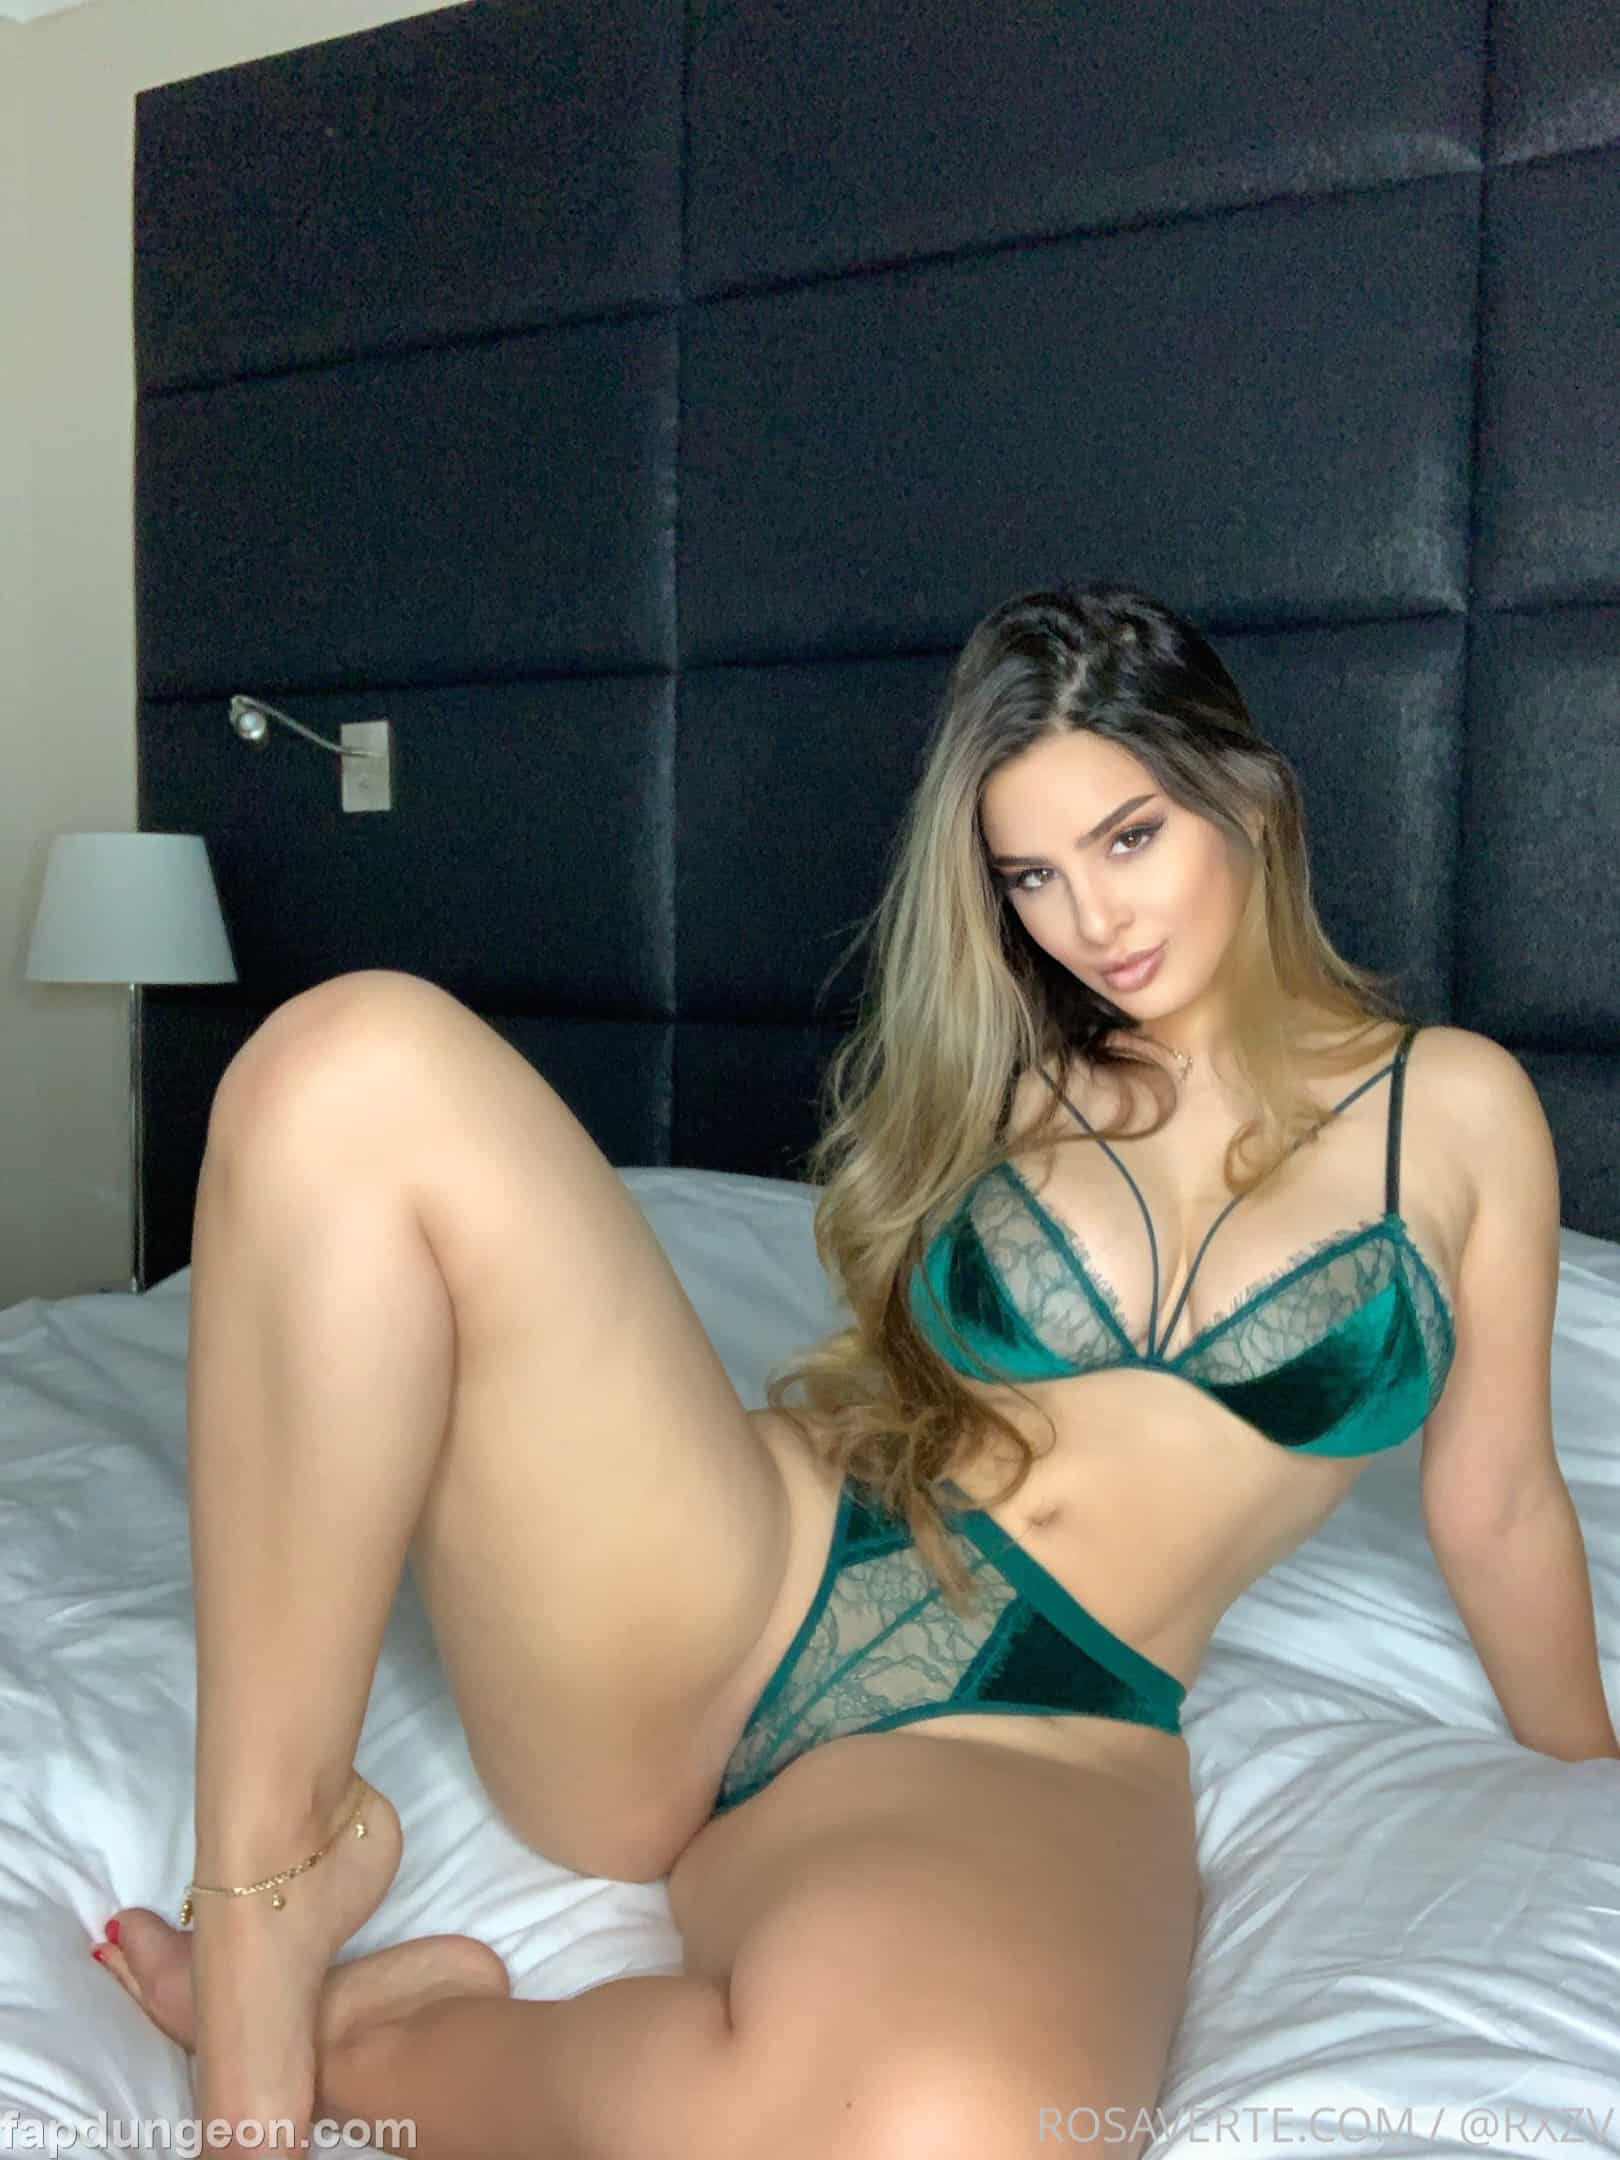 Rosaverte - Busty Model Onlyfans - Page 2 Of 4 - Fapdungeon-4794